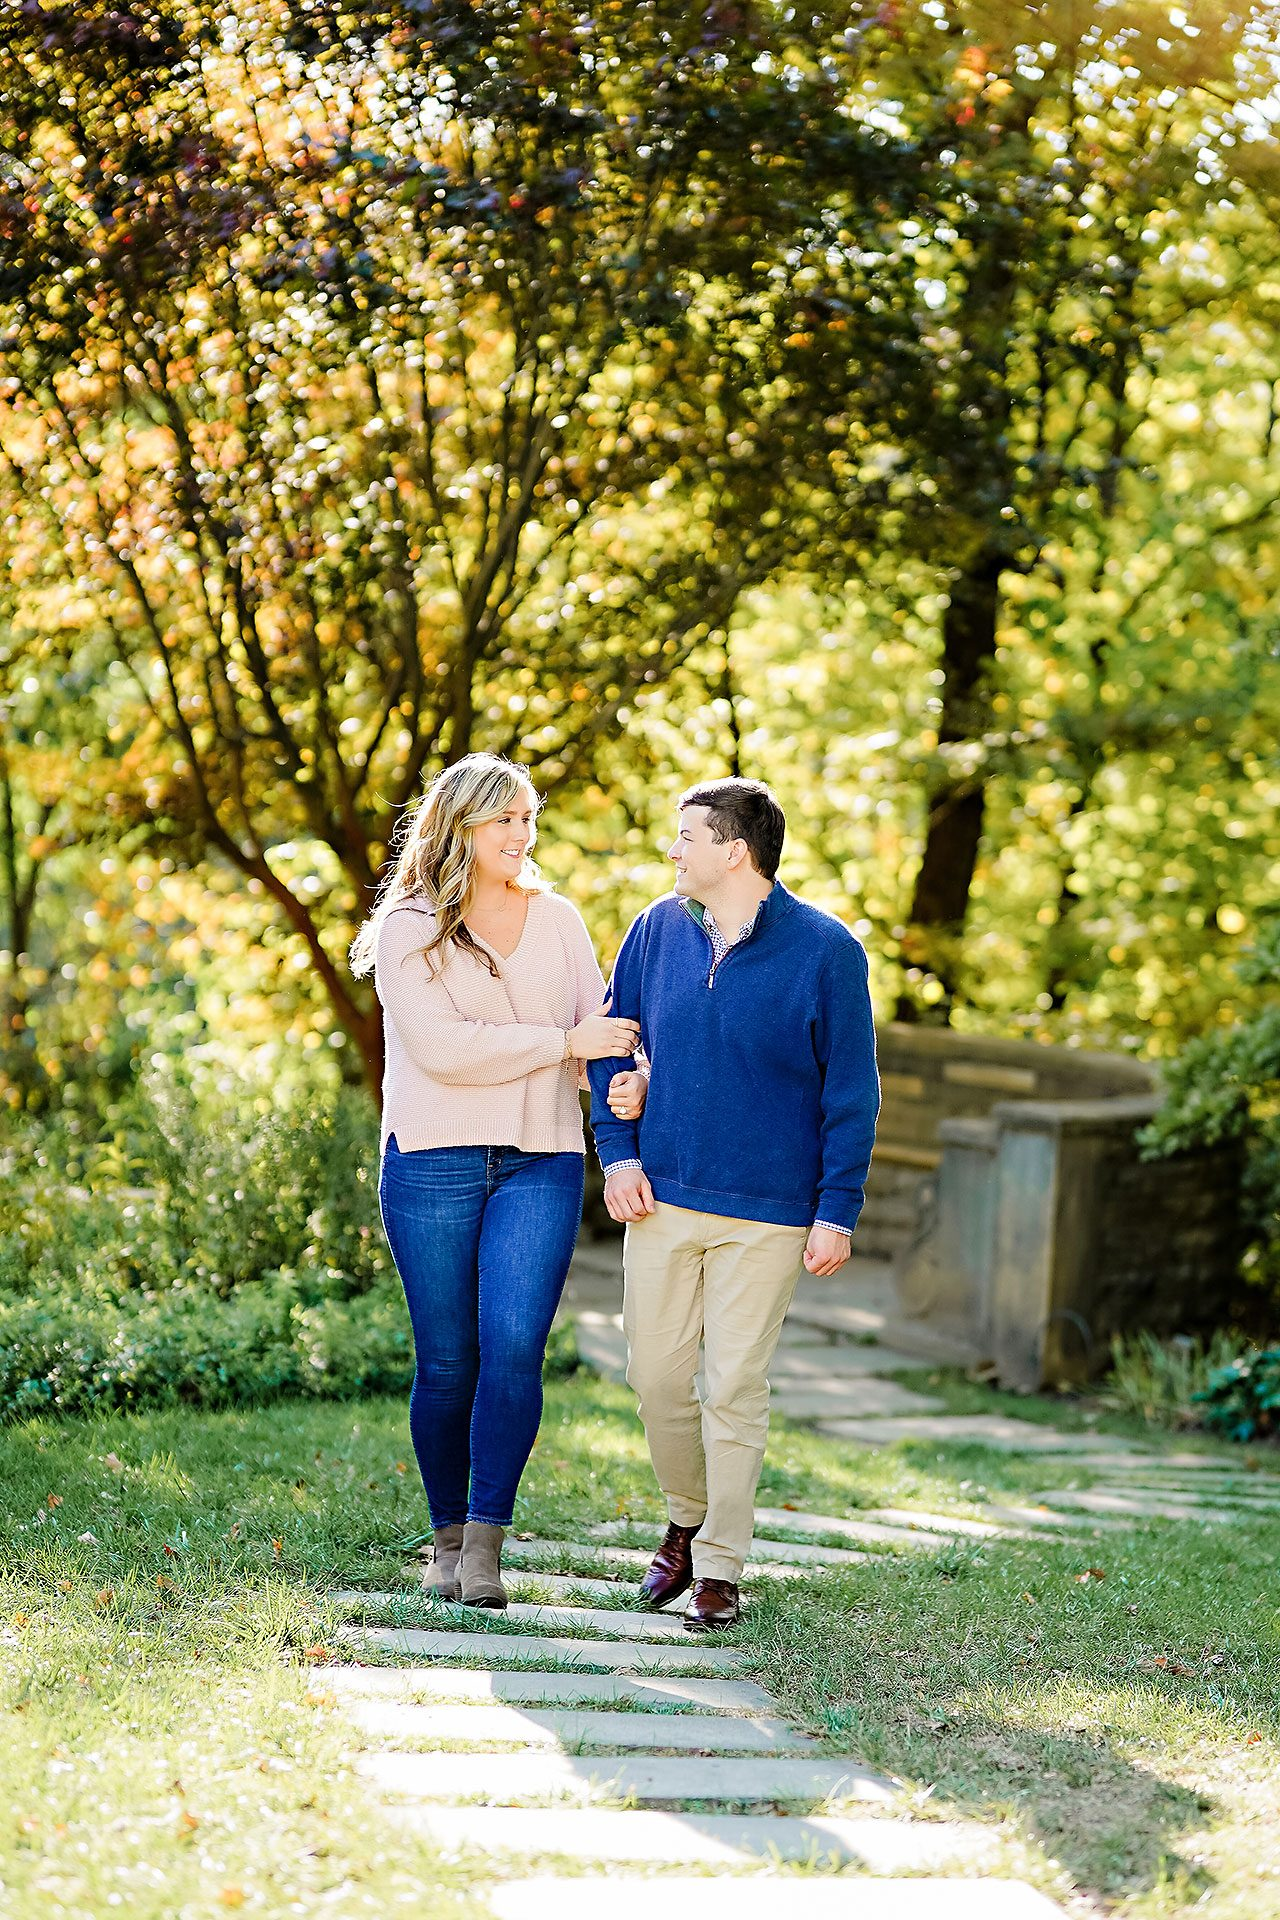 Taylor Case Newfields Engagement Session 096